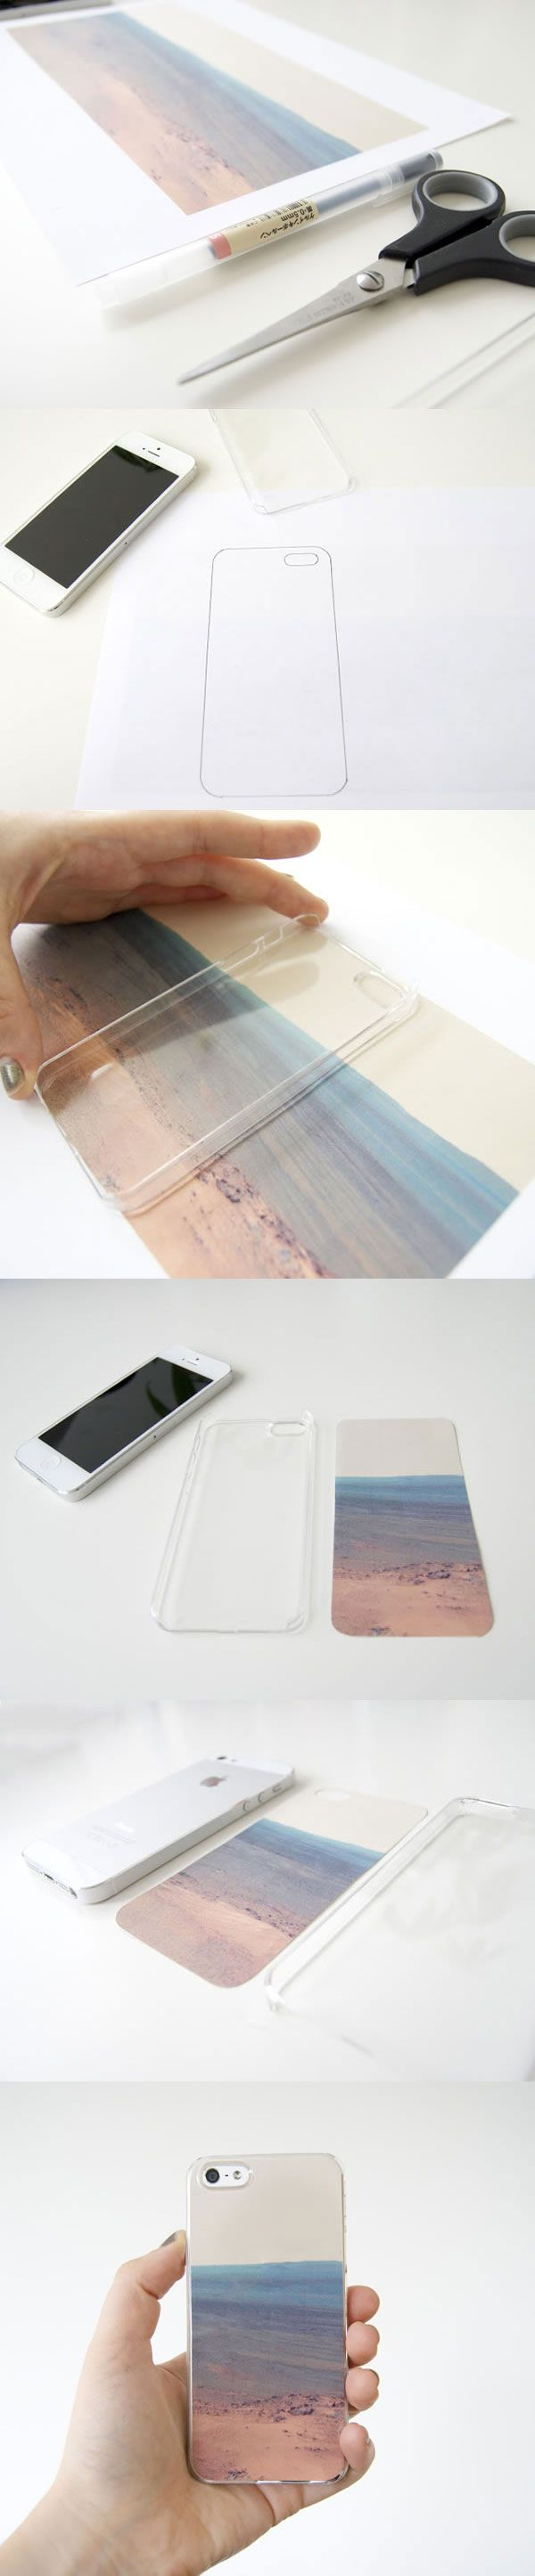 Interesante decoración para tu iphone